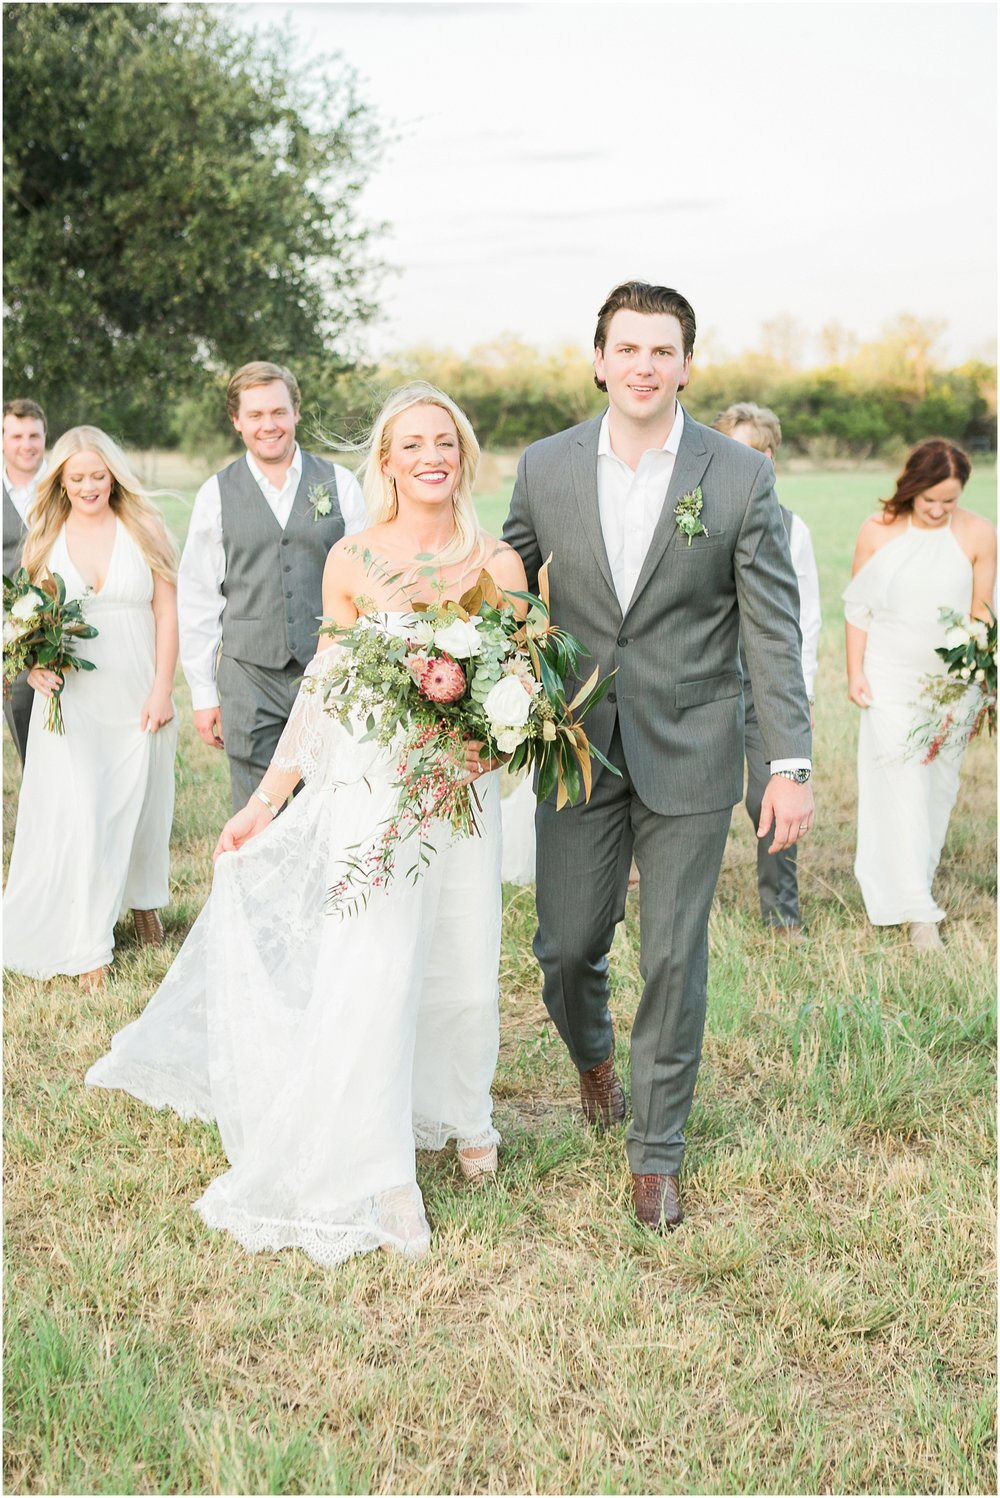 Carly + Barrett Jones_elinhughesphotos-337.jpg